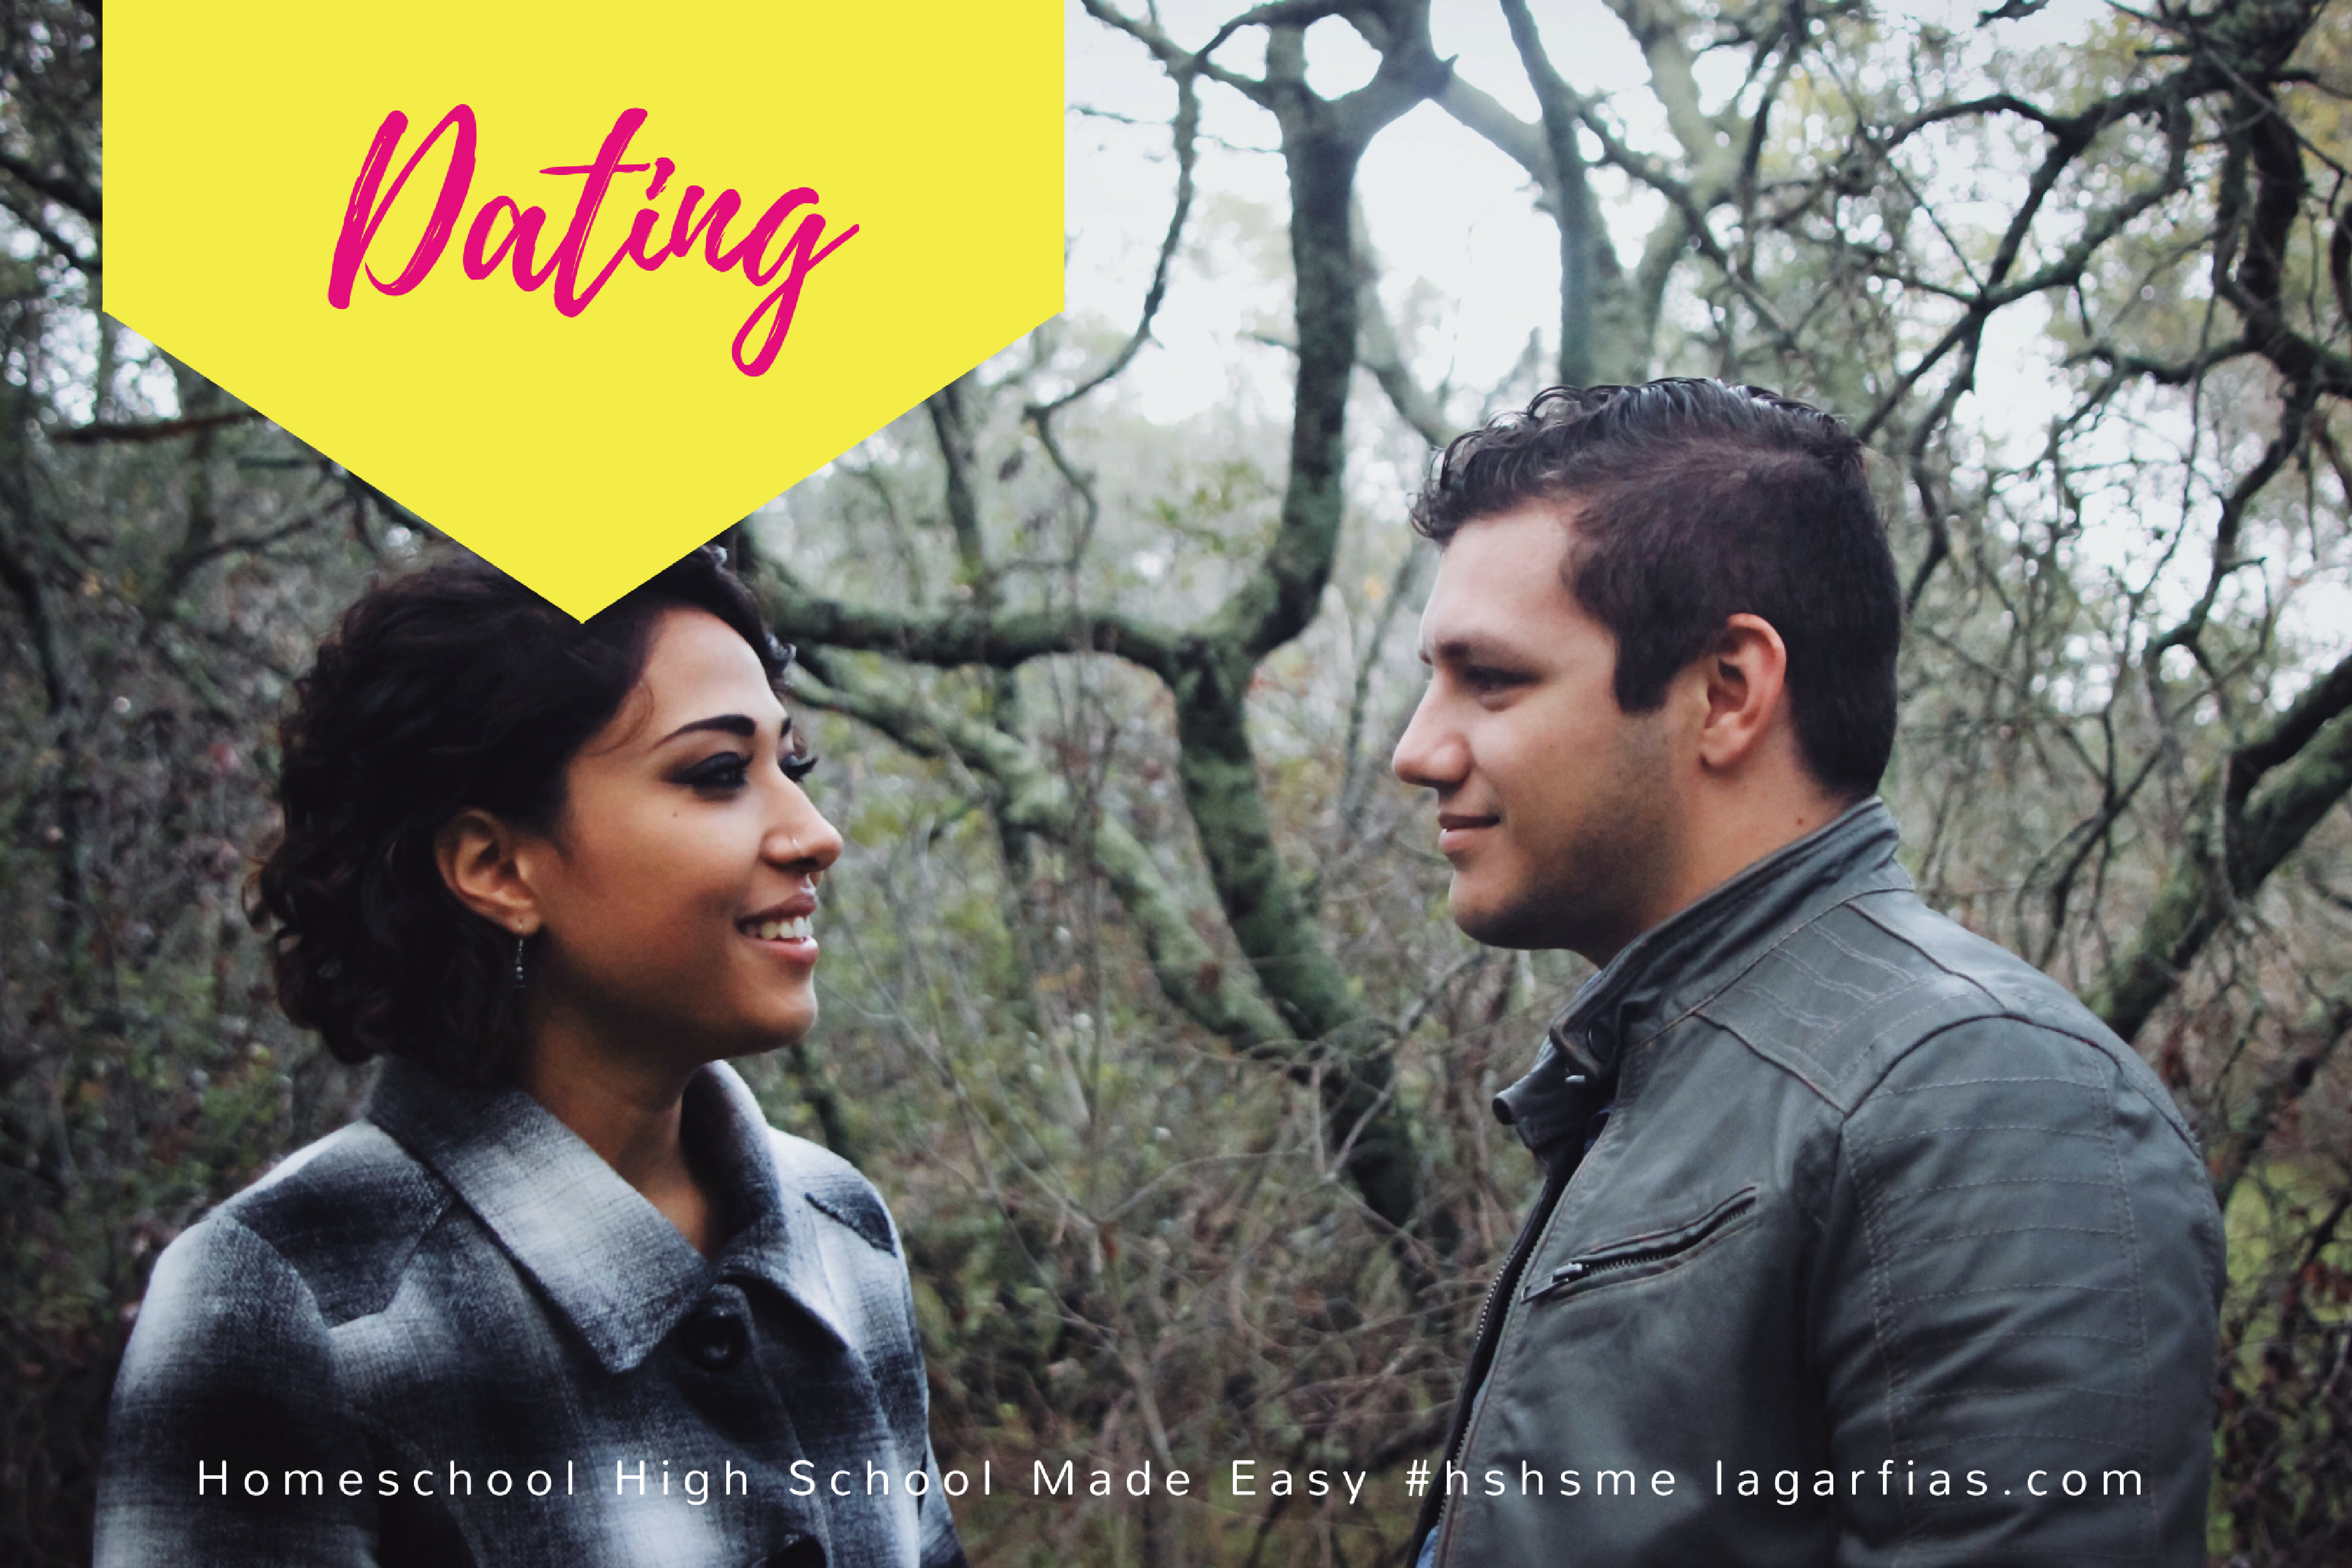 Dating sites for homeschoolers